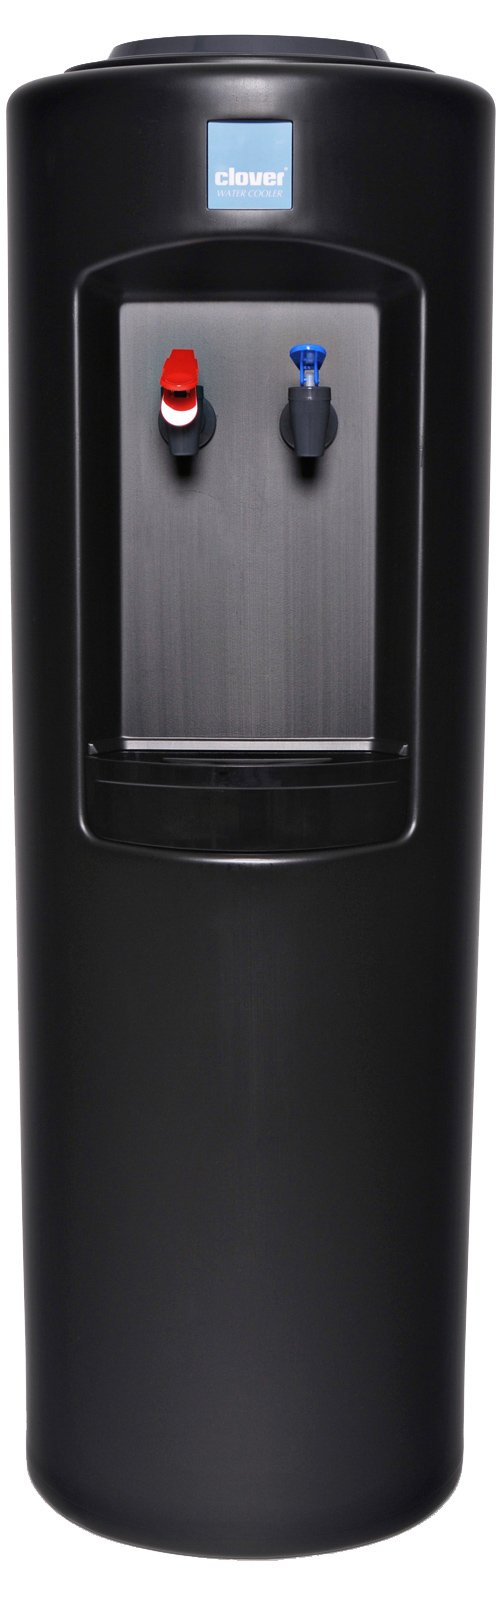 Clover B7A Hot and Cold Bottled Water Cooler (Black)